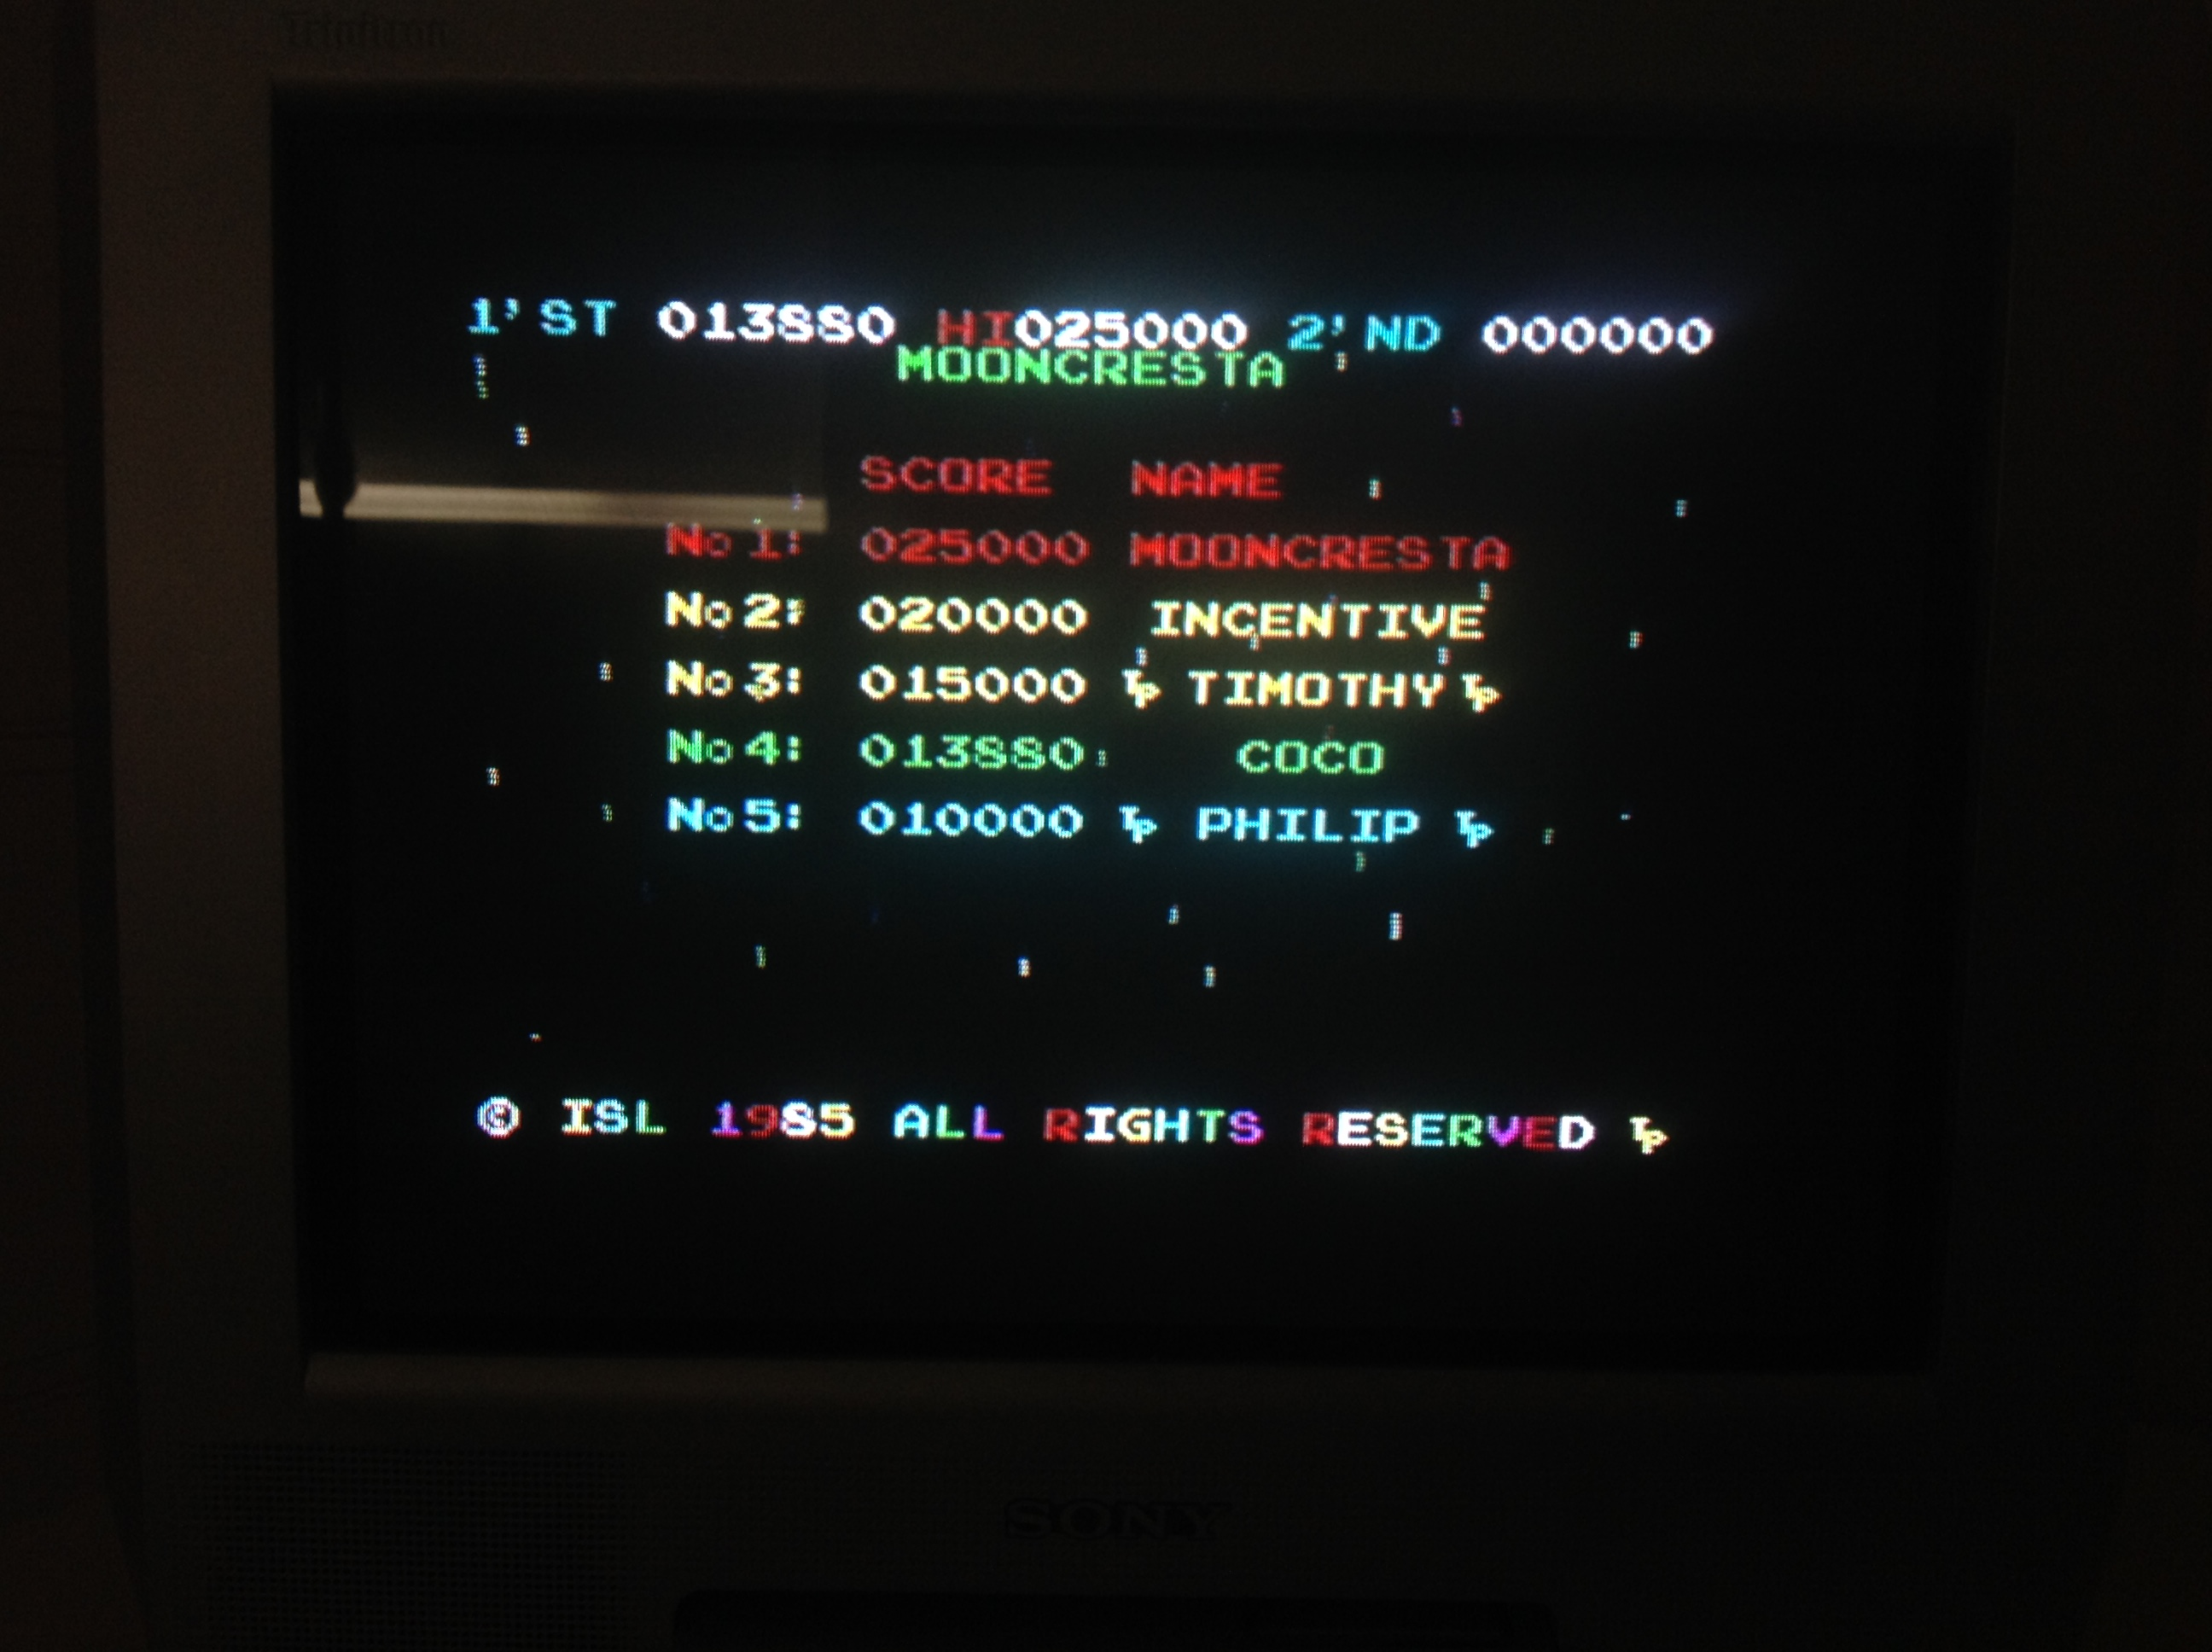 CoCoForest: Moon Cresta (ZX Spectrum) 13,880 points on 2016-01-16 09:10:25